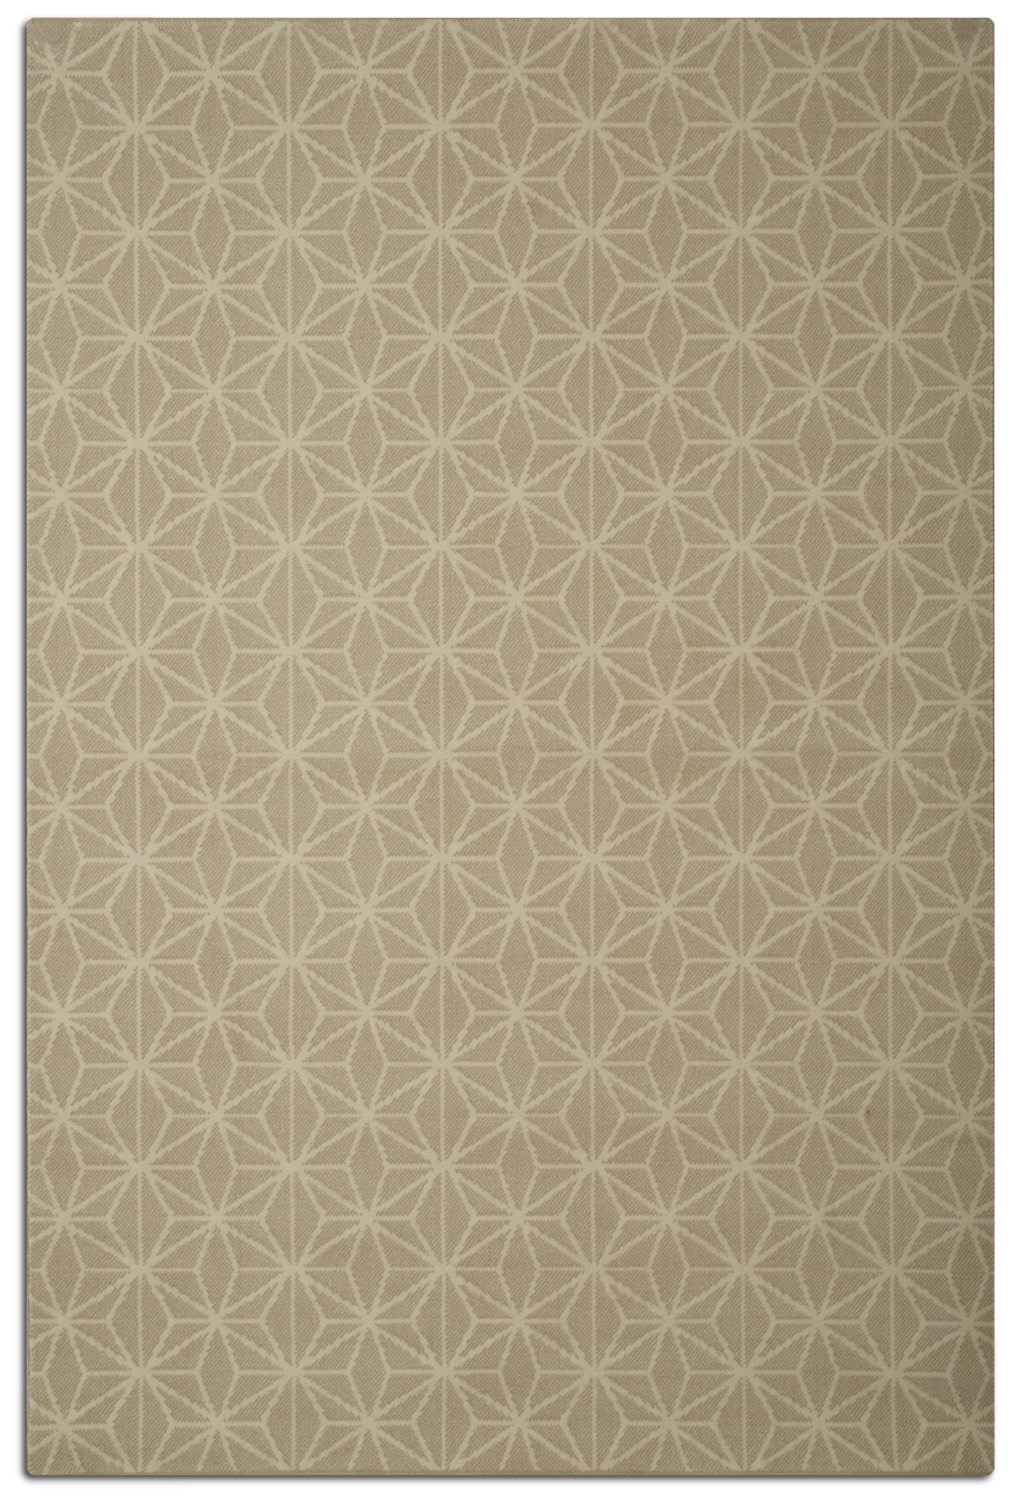 Rugs - Broadway Area Rug - Beige and Ivory